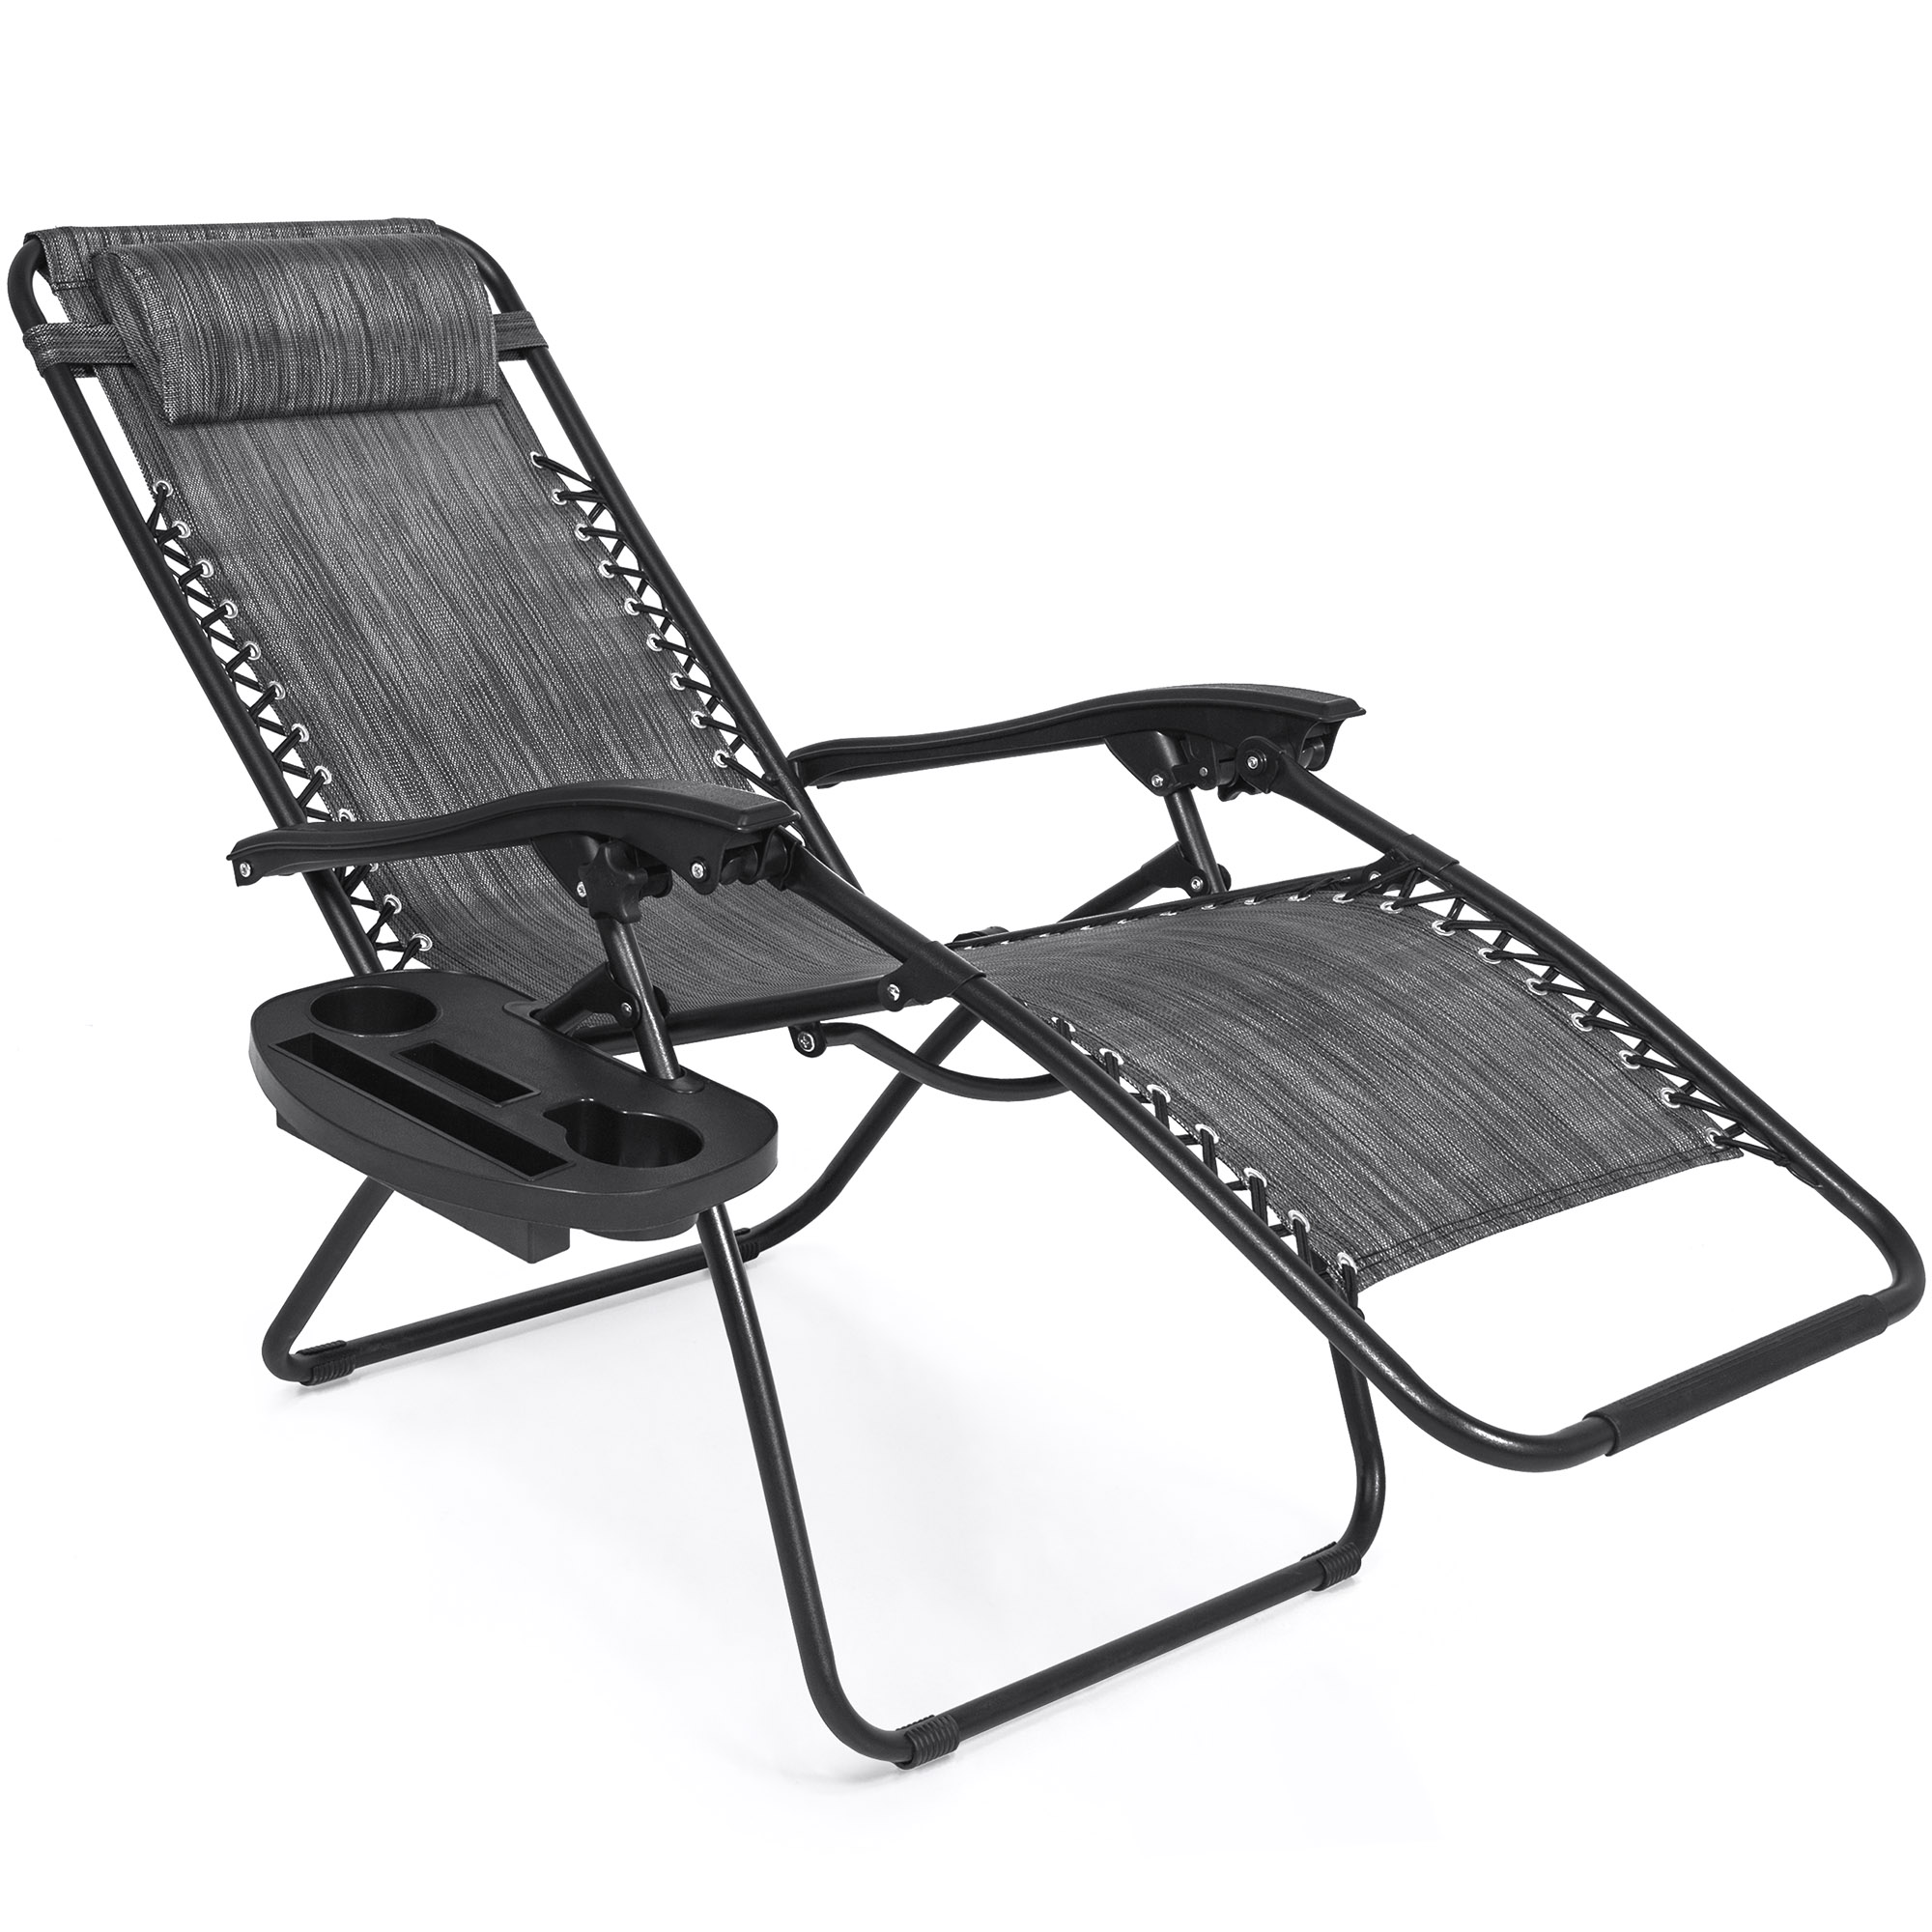 BCP-Set-of-2-Adjustable-Zero-Gravity-Patio-Chair-Recliners-w-Cup-Holders thumbnail 46